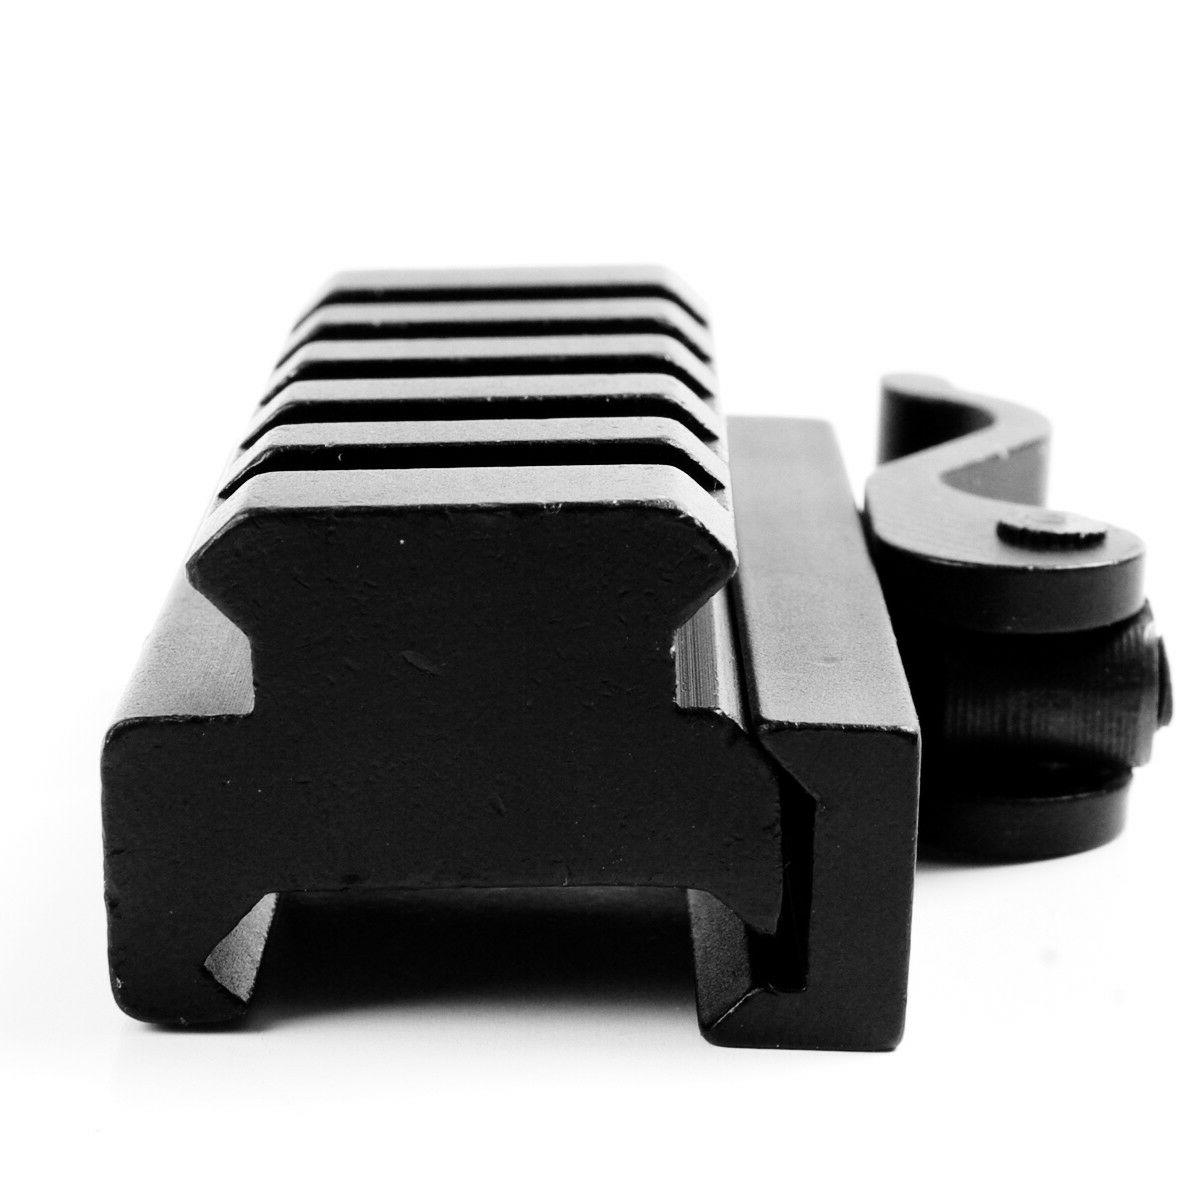 5 Slots QD Riser Release Adapter for 20mm Picatinny Rail